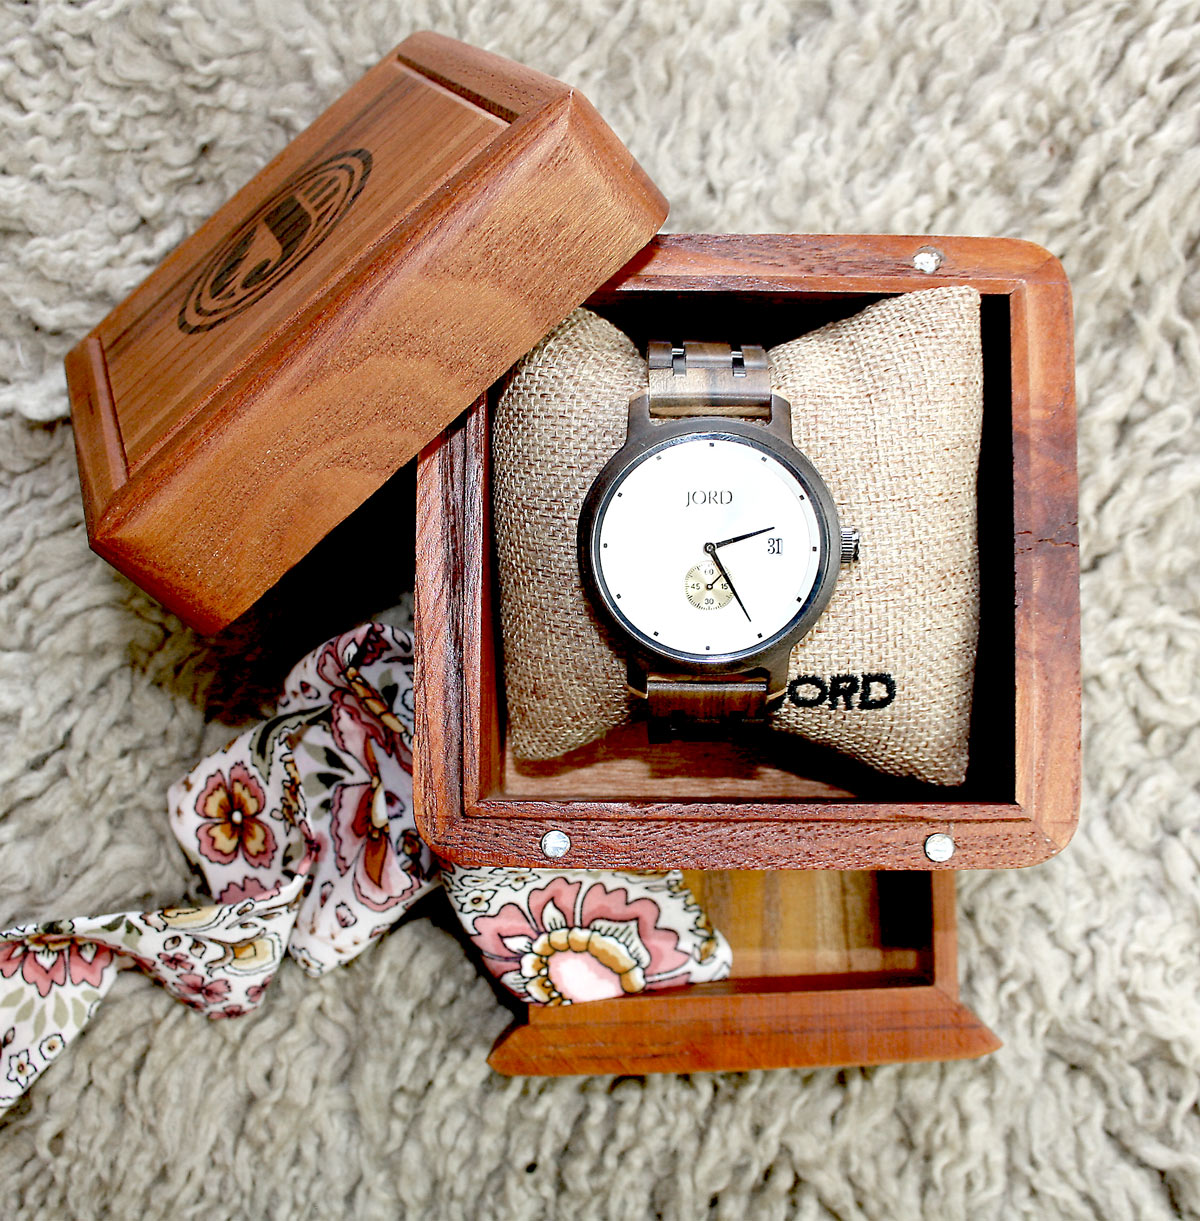 JORD wood watch package is the perfect gift